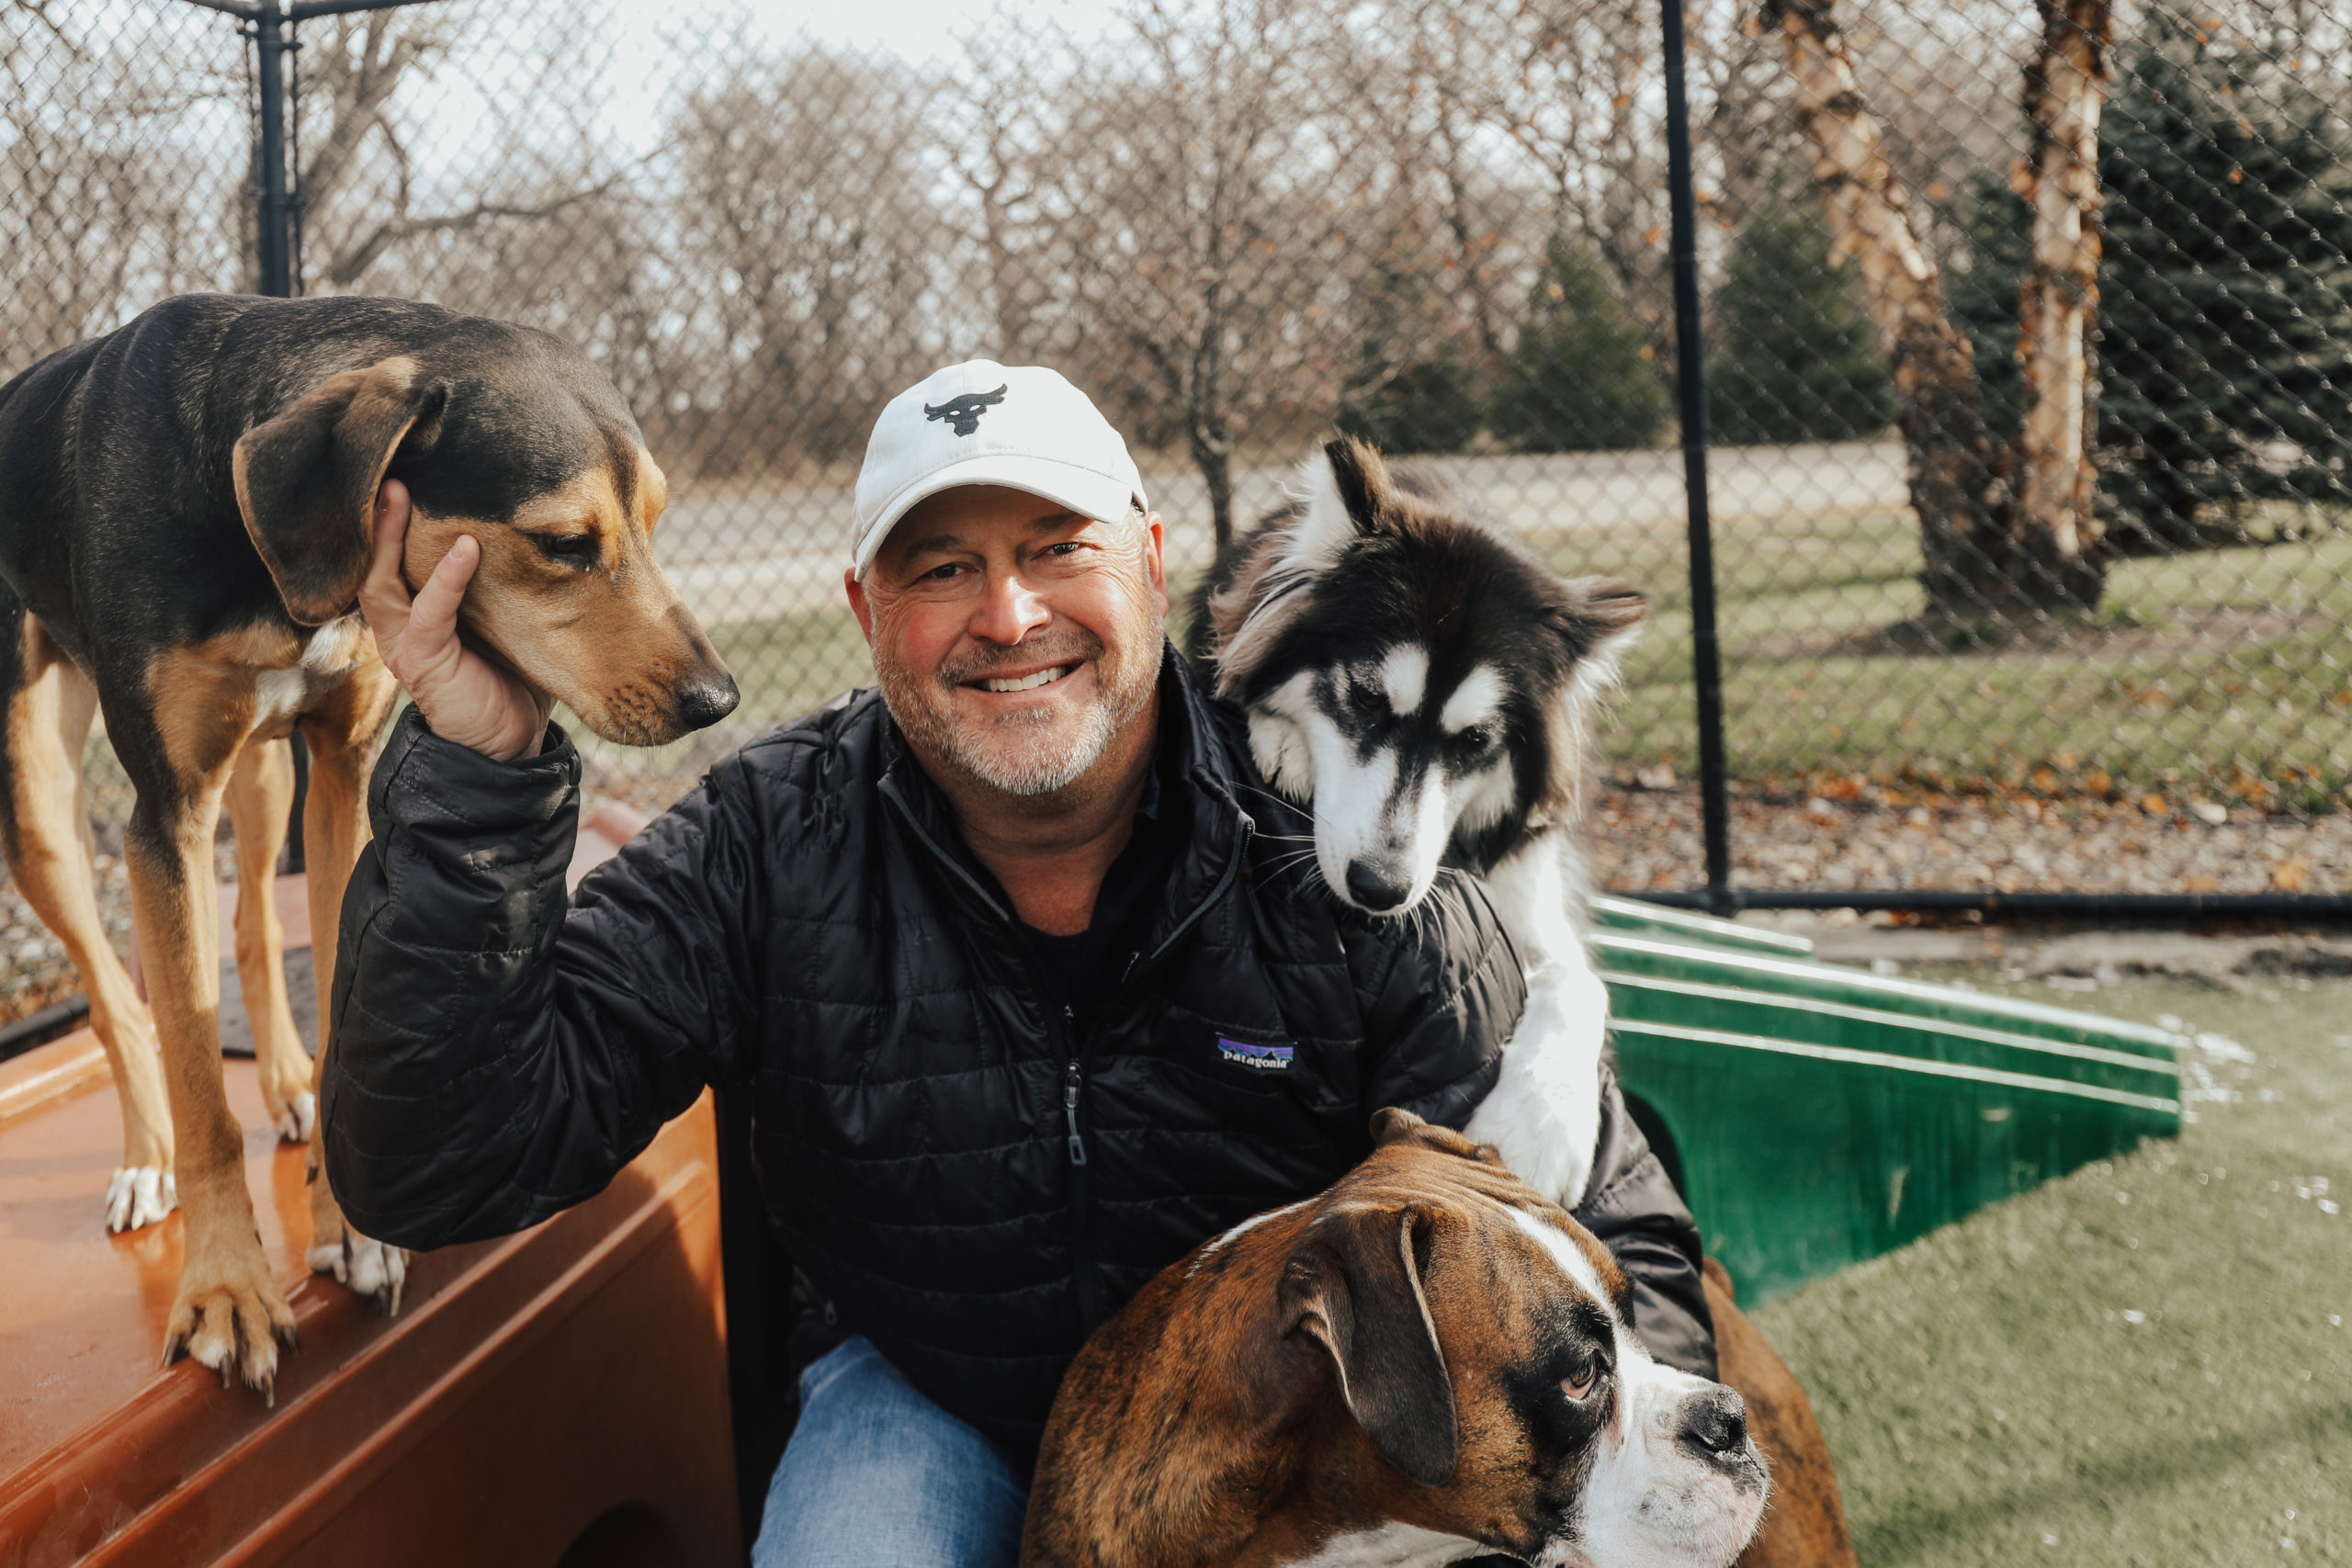 Man smiling with three dogs at his side